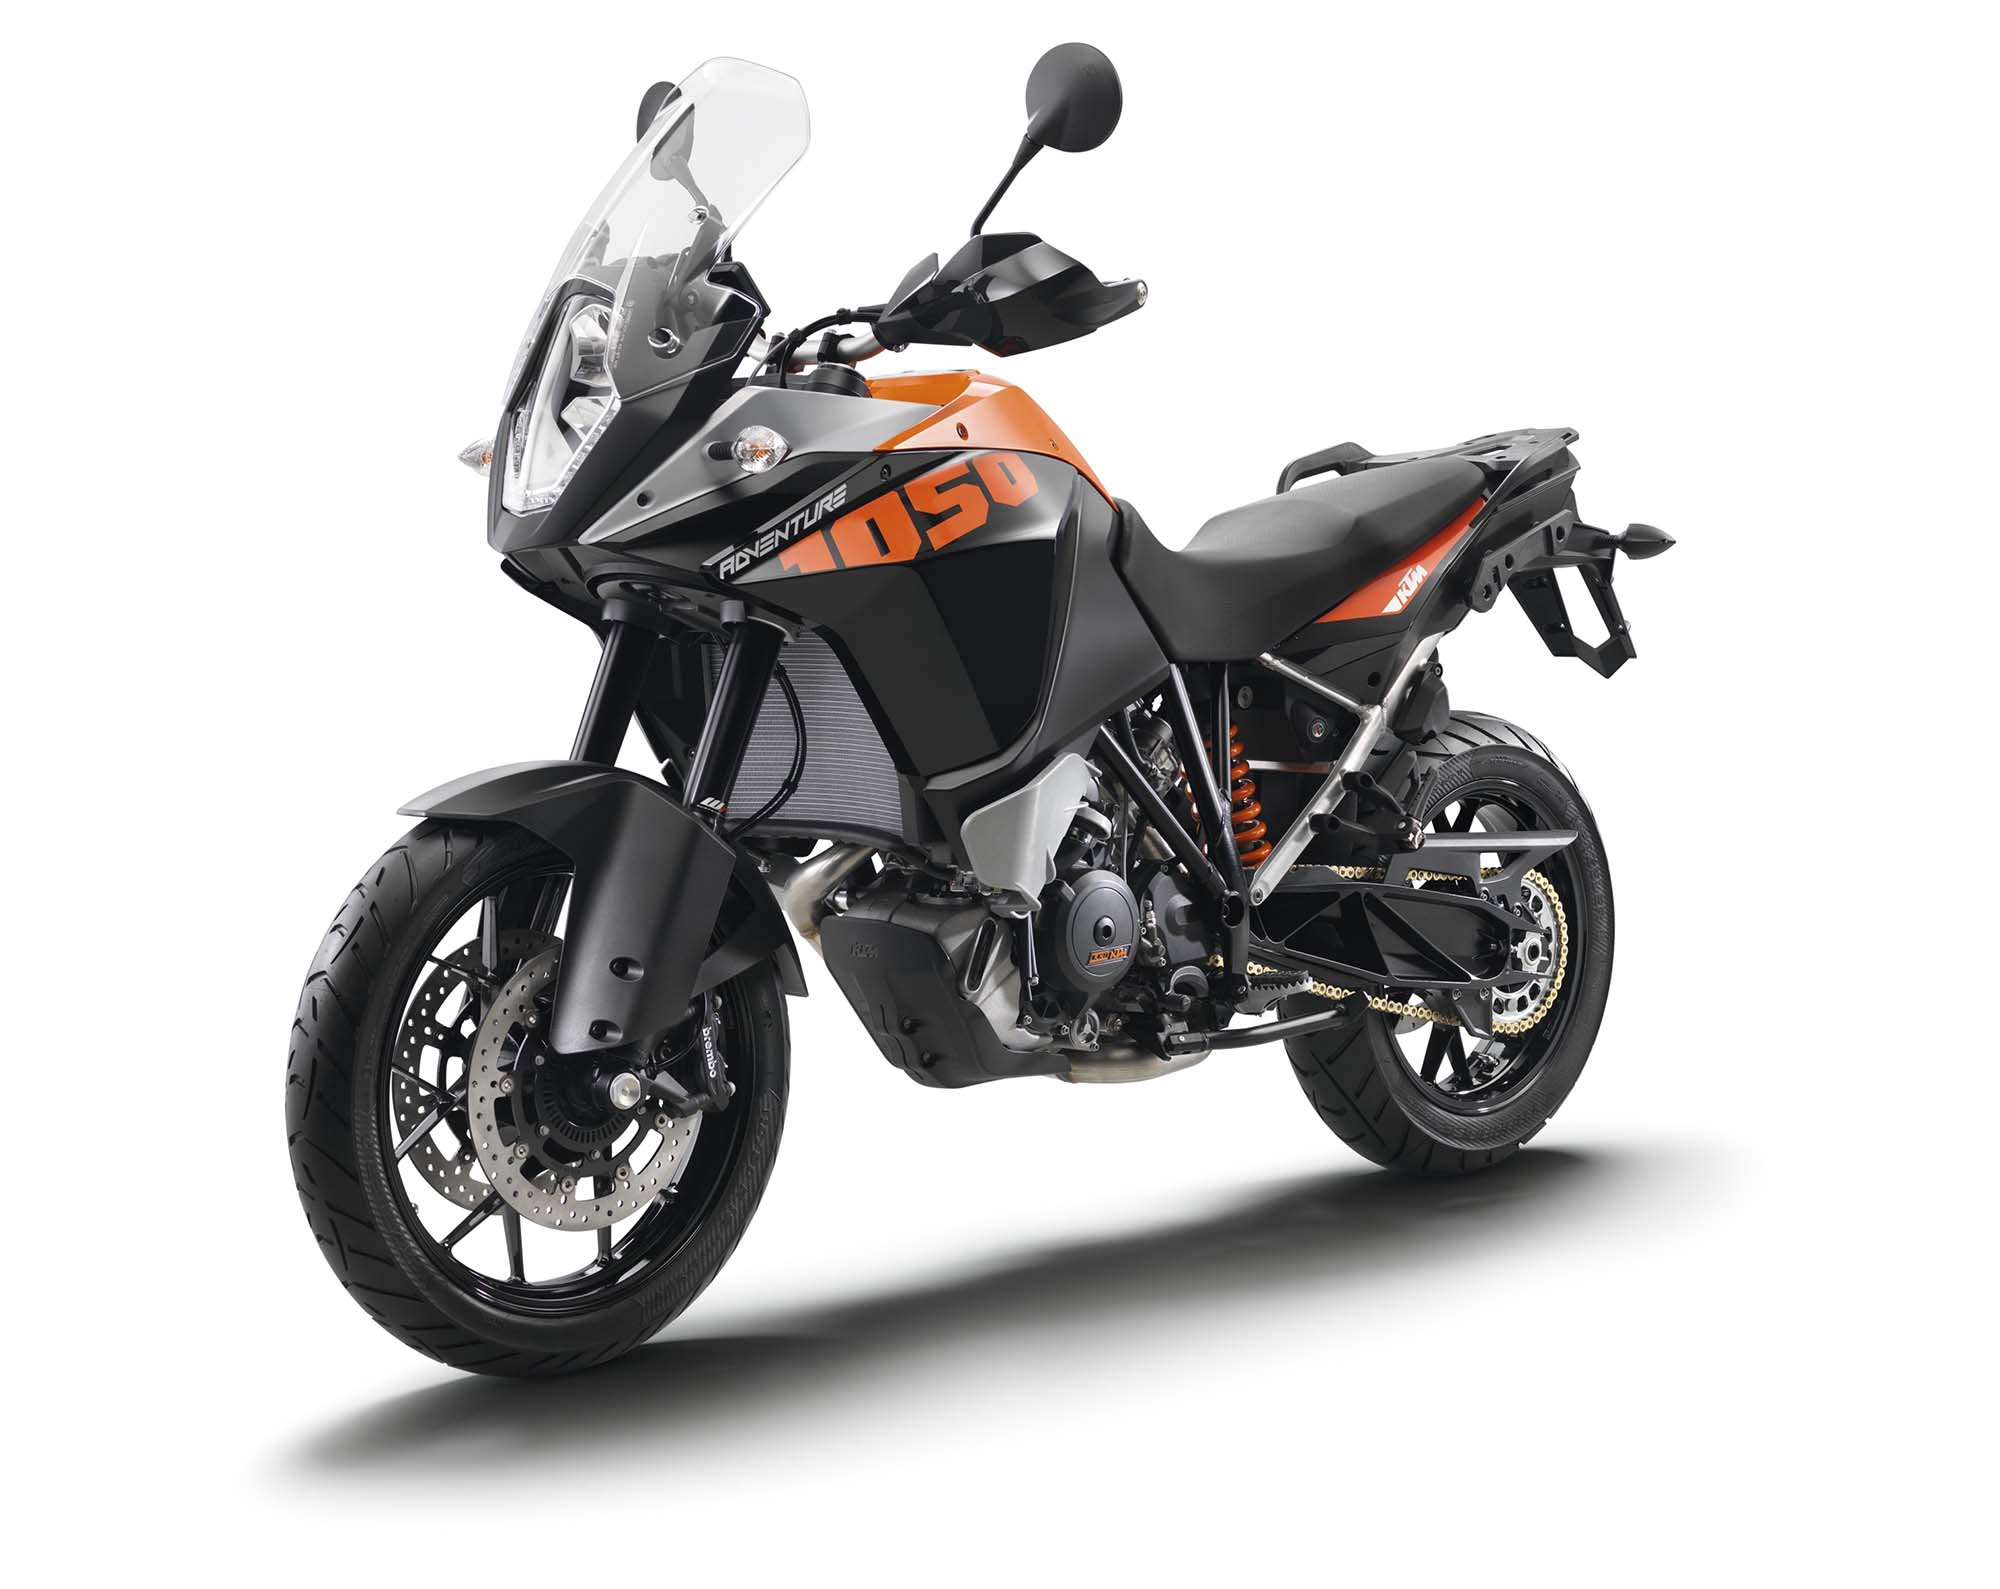 KTM 1050 Adventure - Cheap ADV, But Not for the USA ...